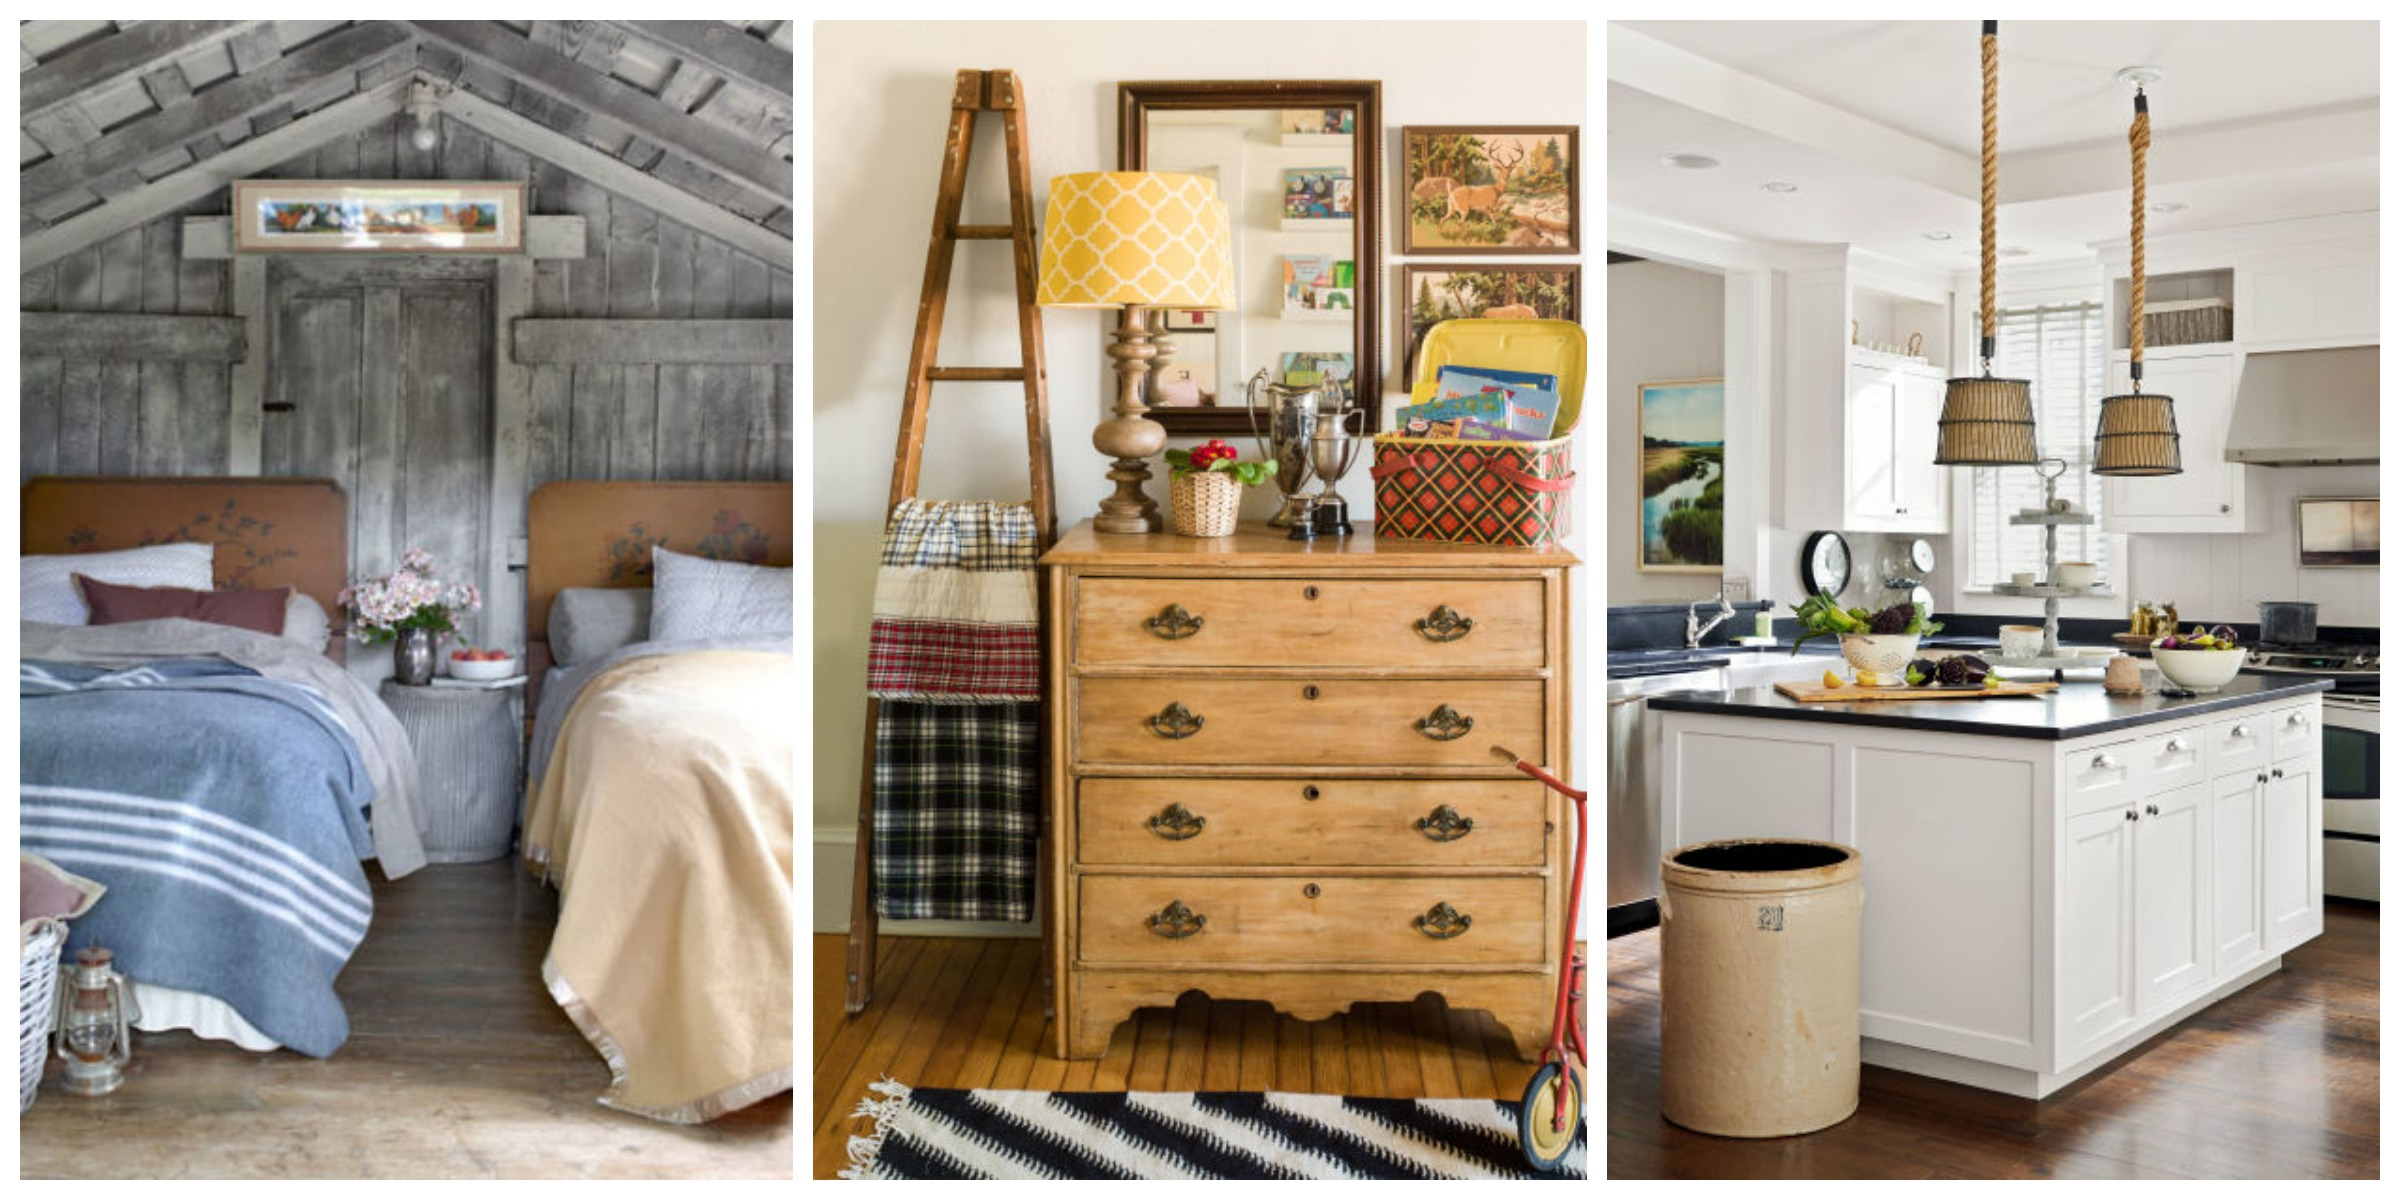 34 Clever Ways To Upcycle Flea Market Finds Into Stylish